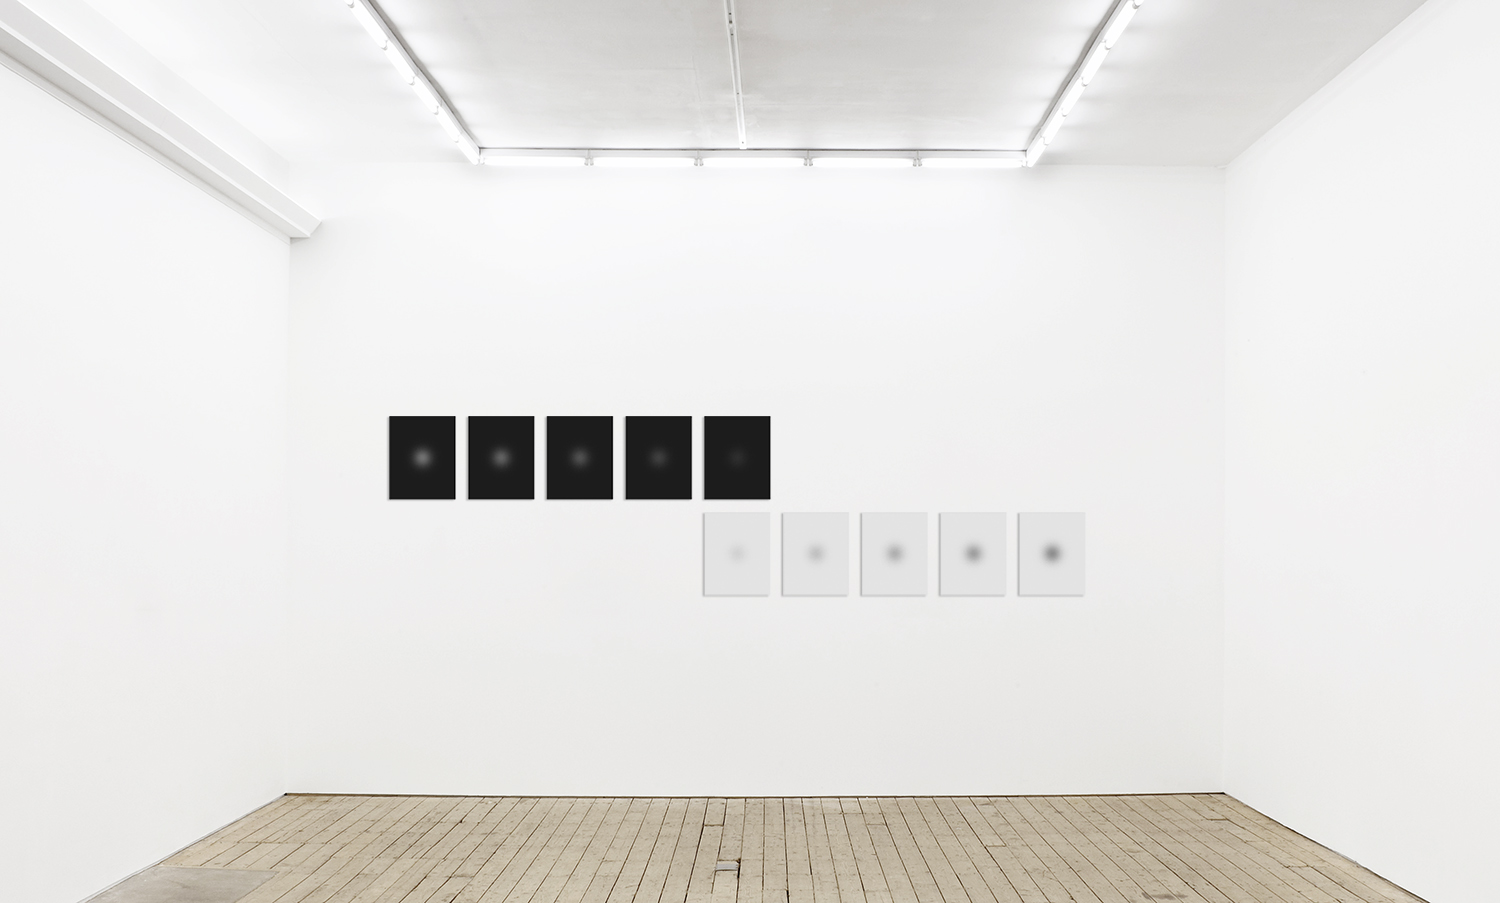 (Installation Photo) And All of a Sudden You Were Gone © Rafael Soldi